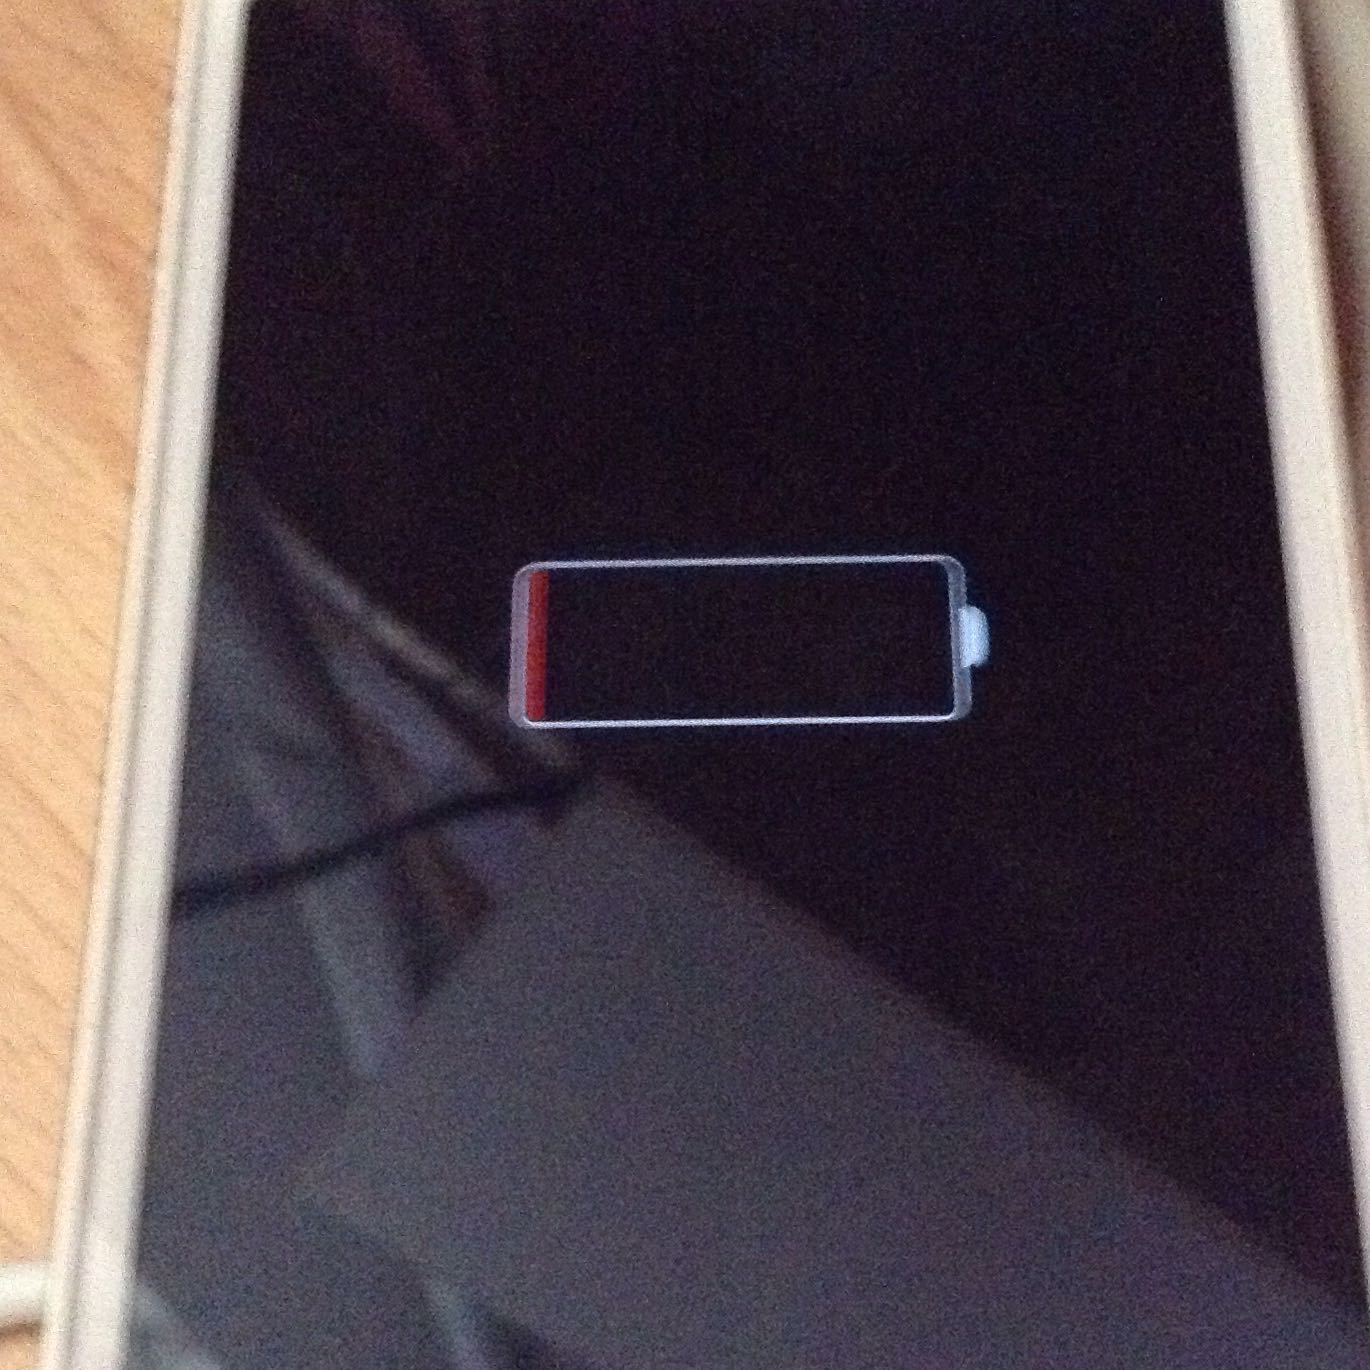 Iphone S Batterie